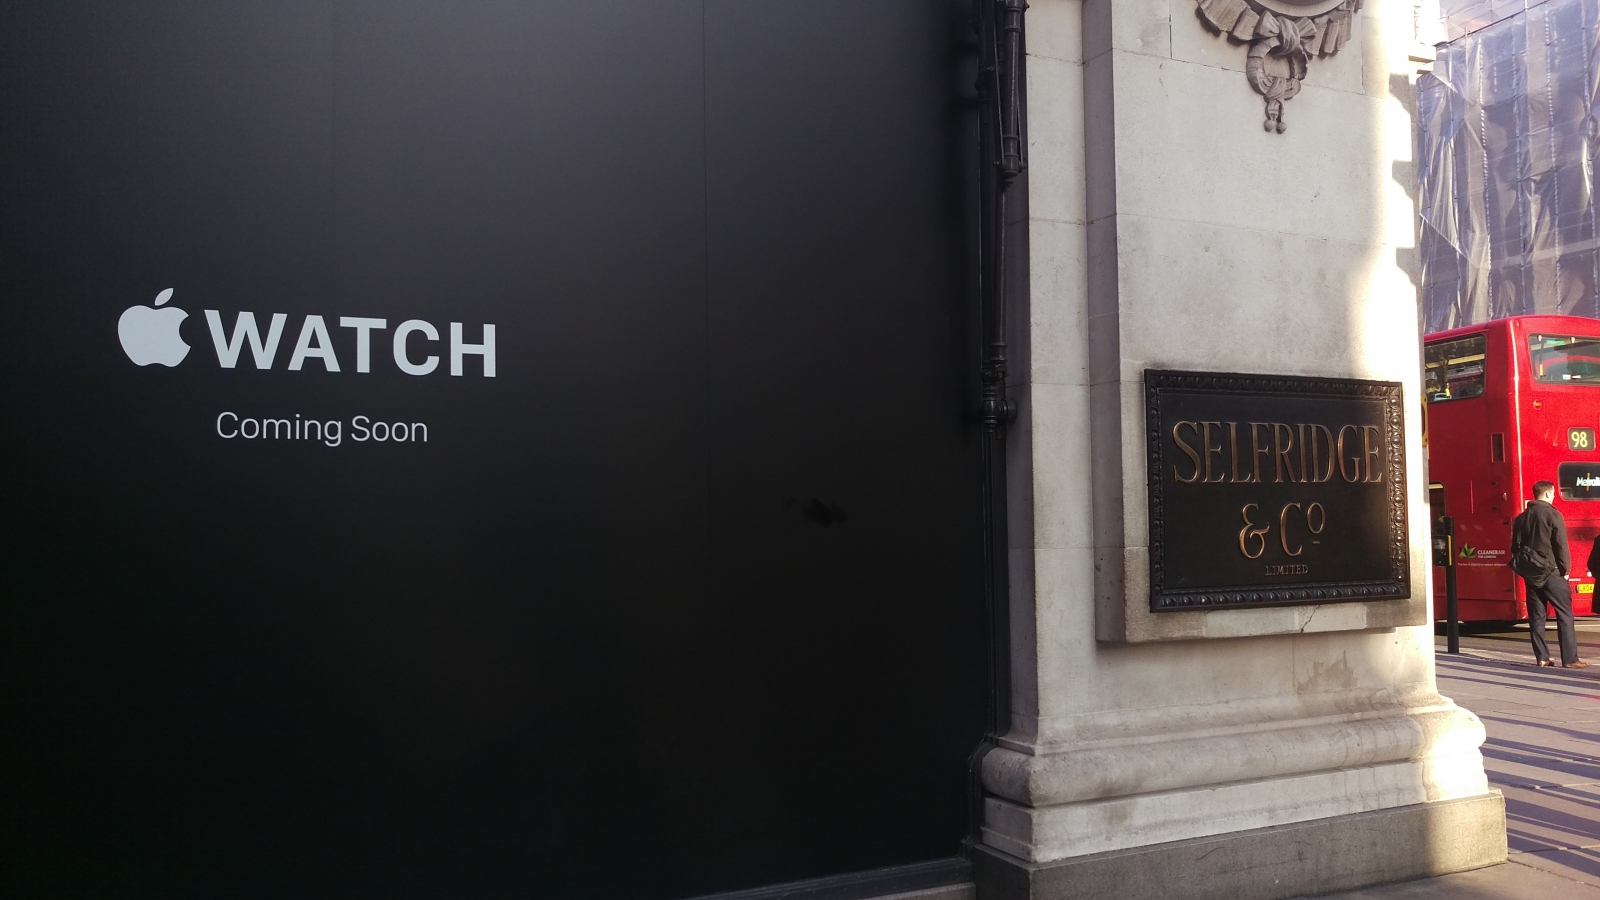 Apple Watch at Selfridges